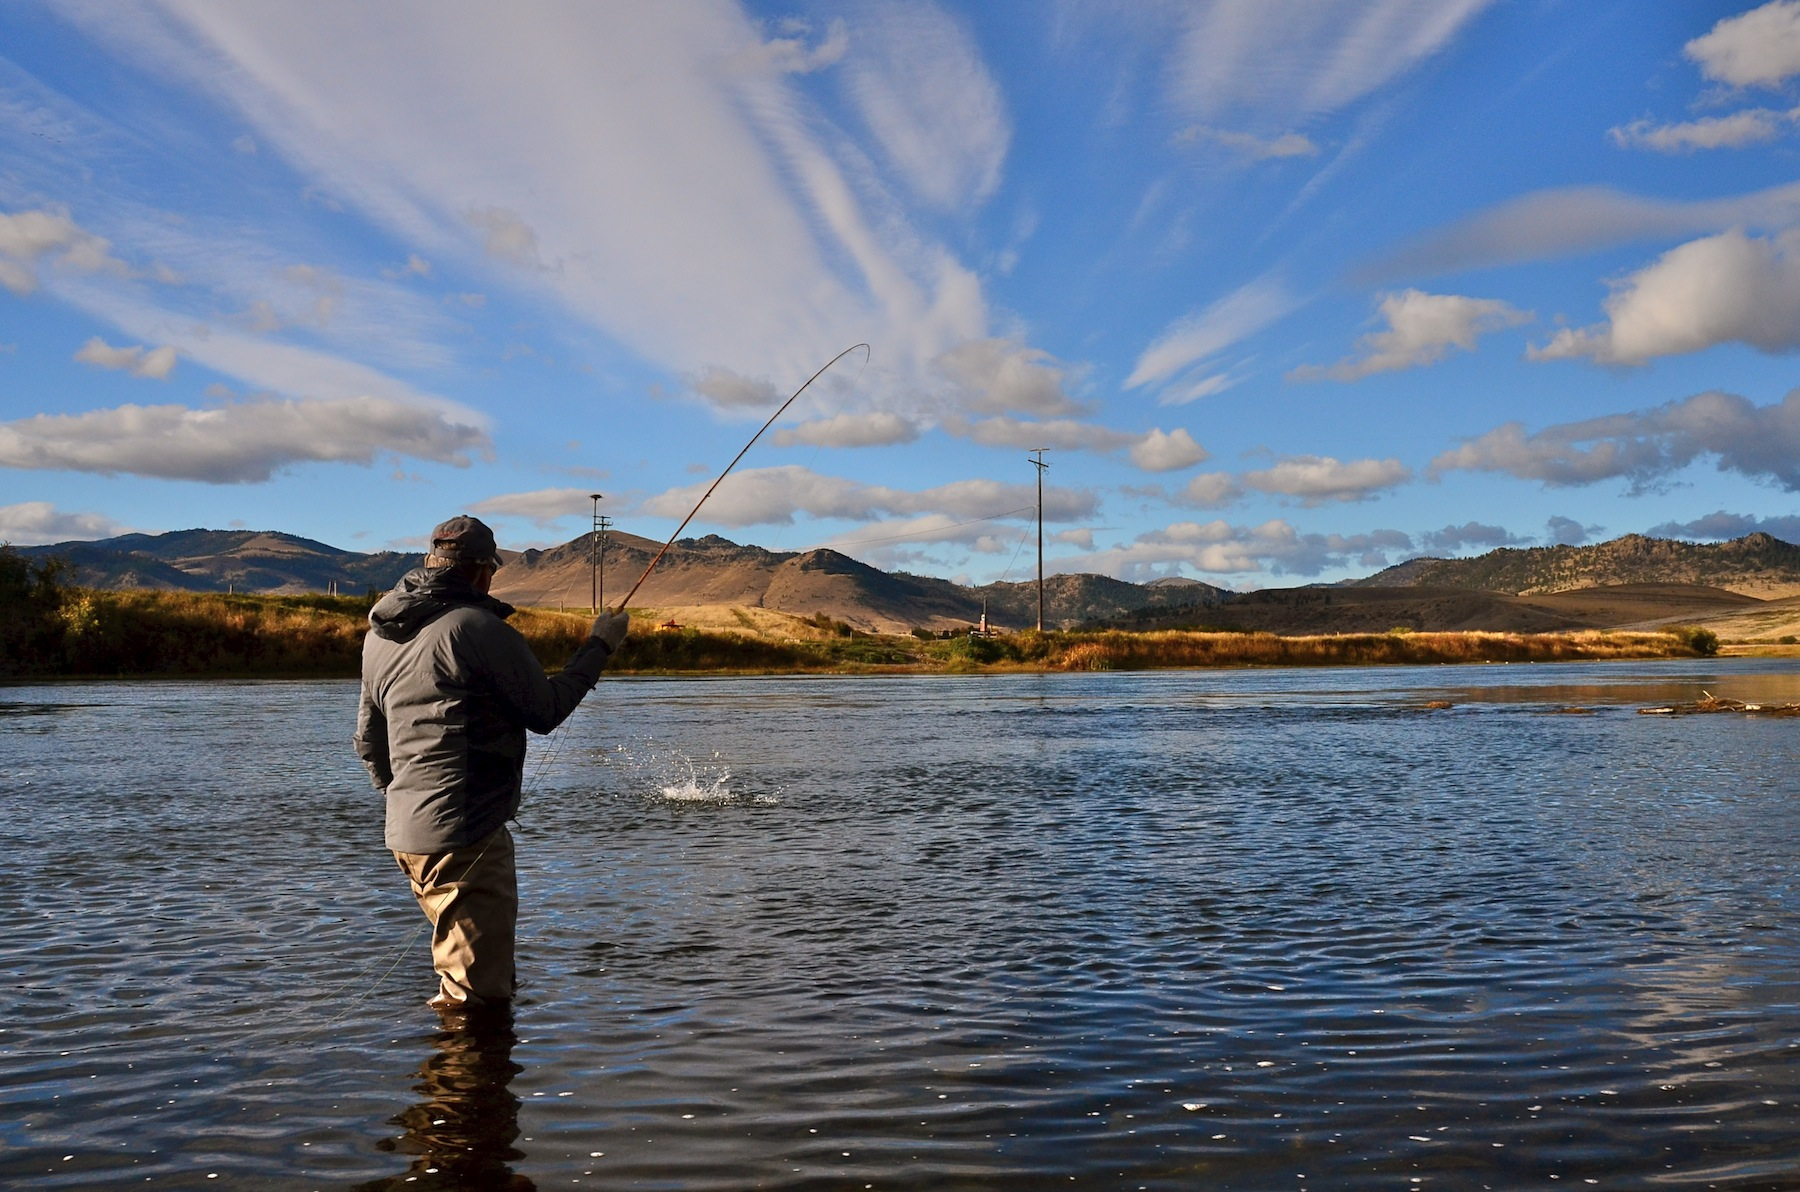 Missouri river fly fishing report montana for Missouri river fishing report south dakota